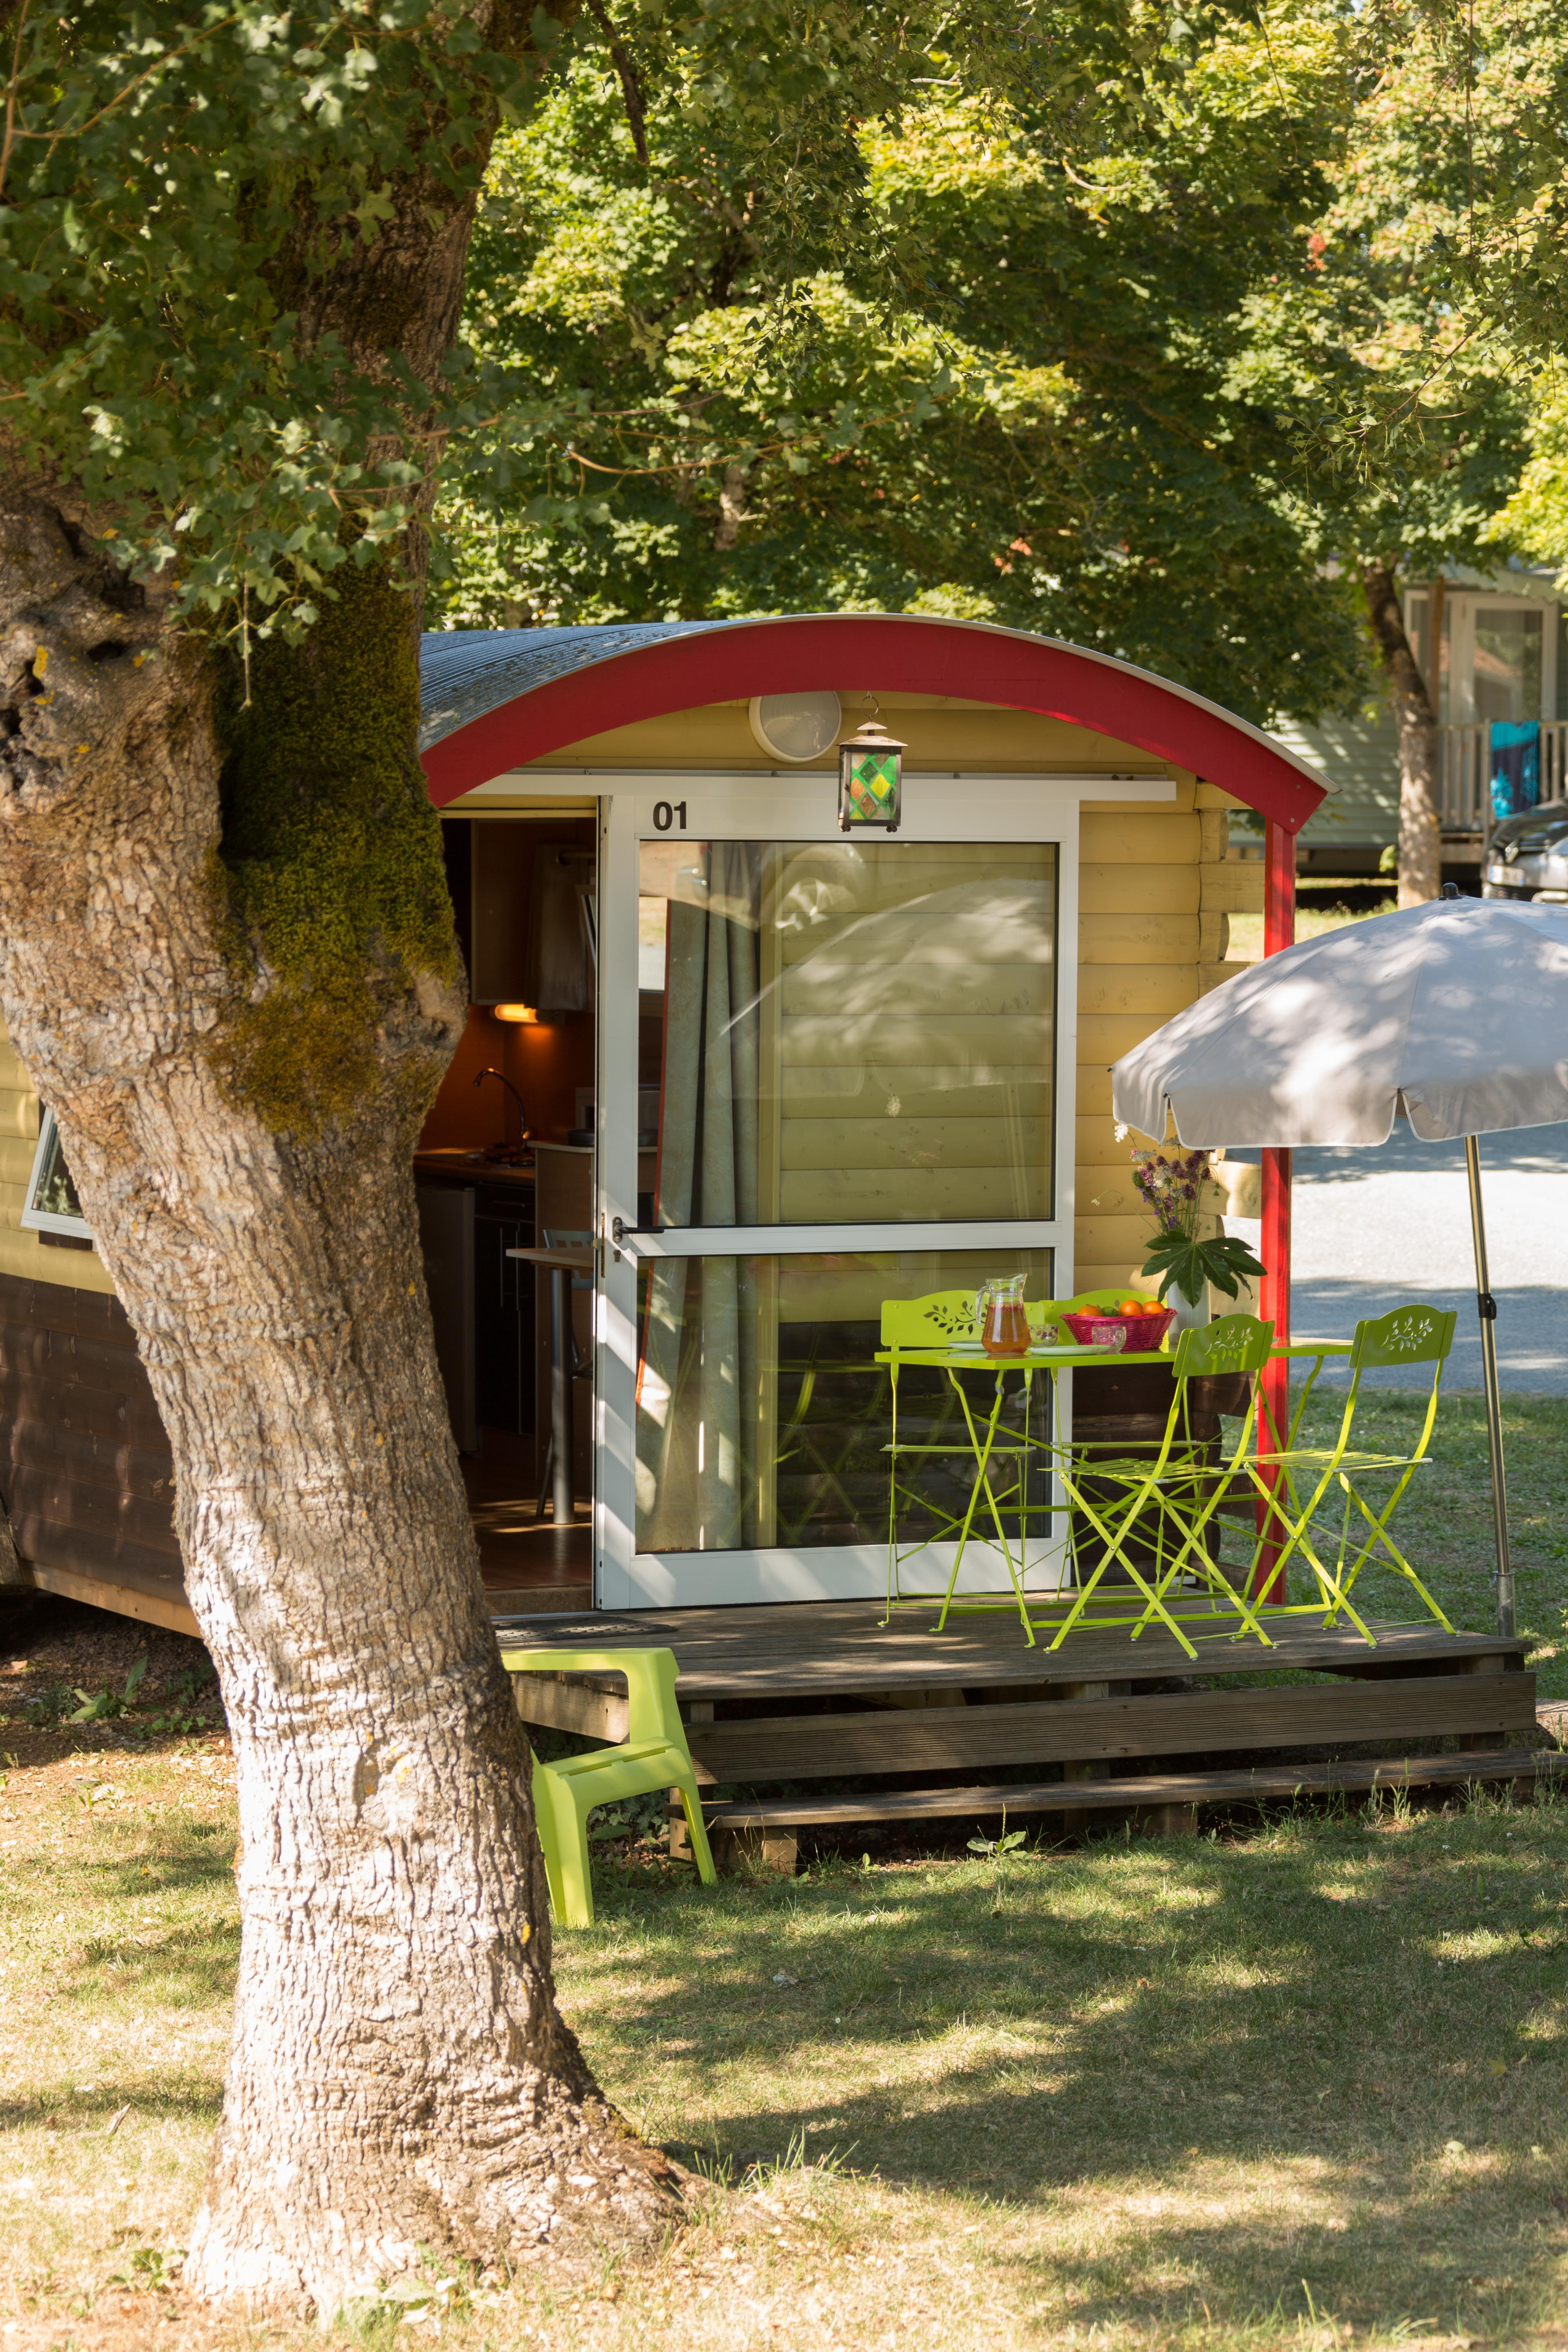 Huuraccommodaties - Pipowagen - Camping Les Cigales